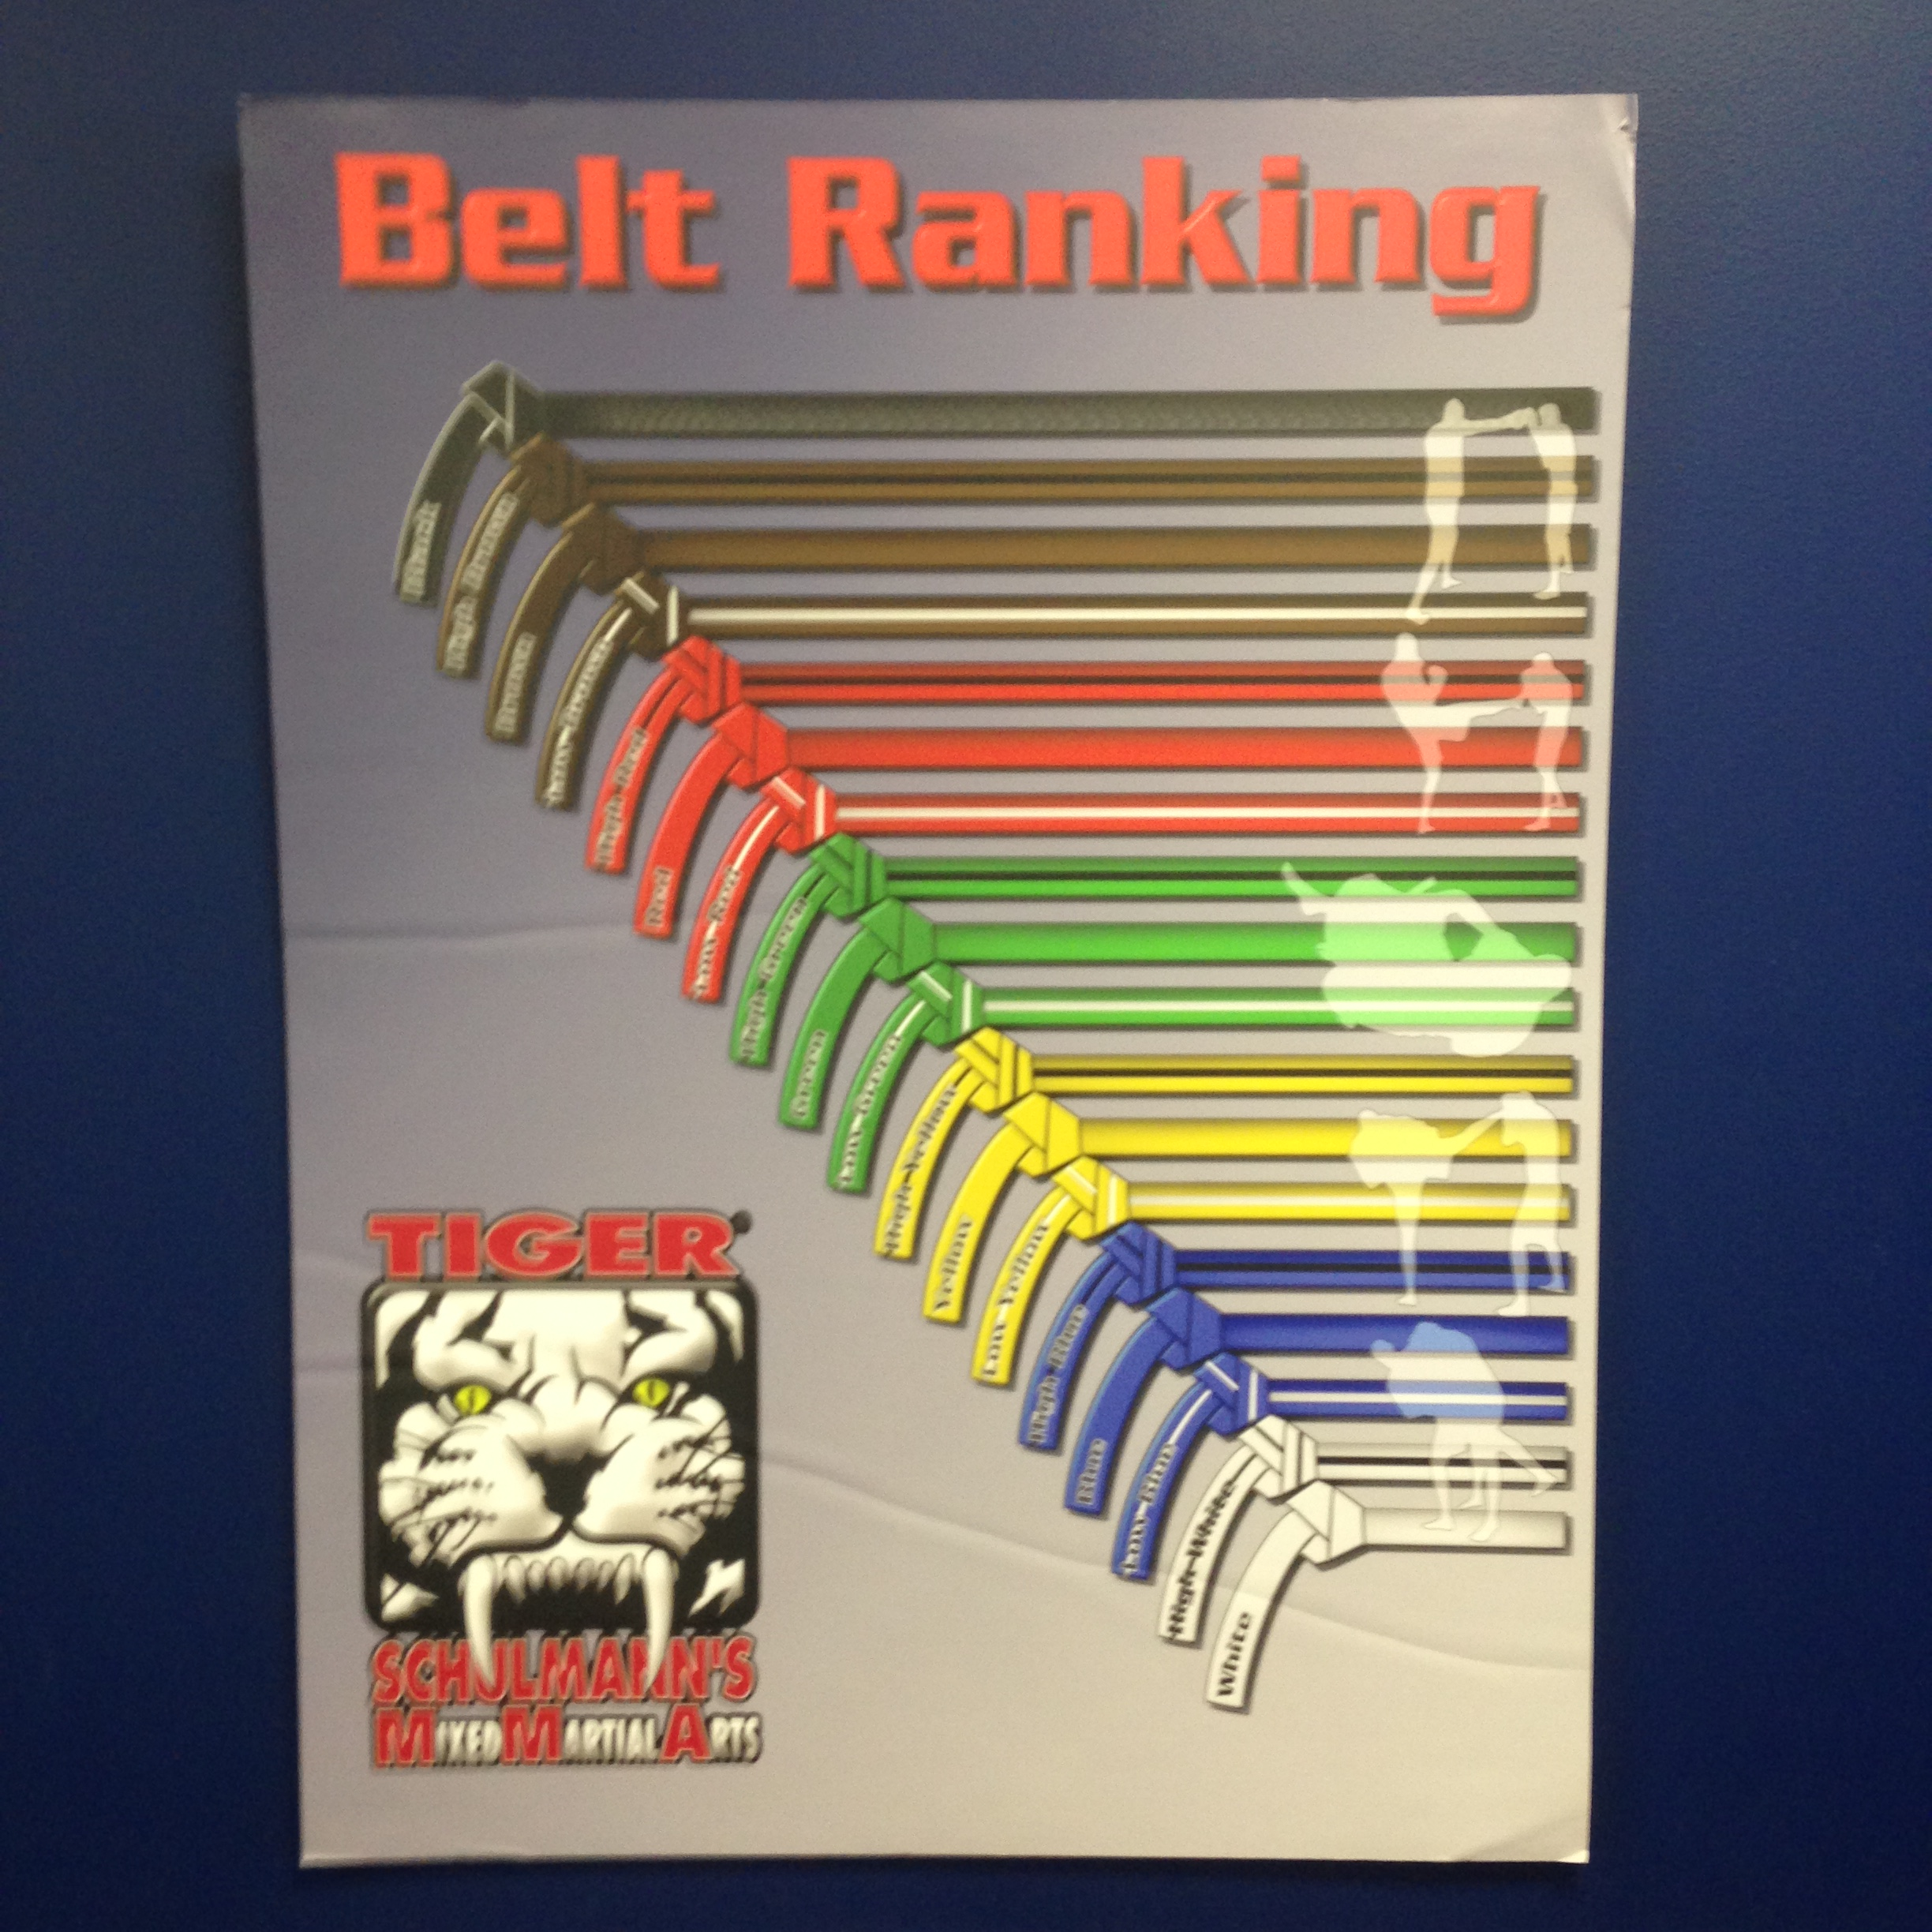 Tiger Schulmann's Martial Arts | Belt Ranking